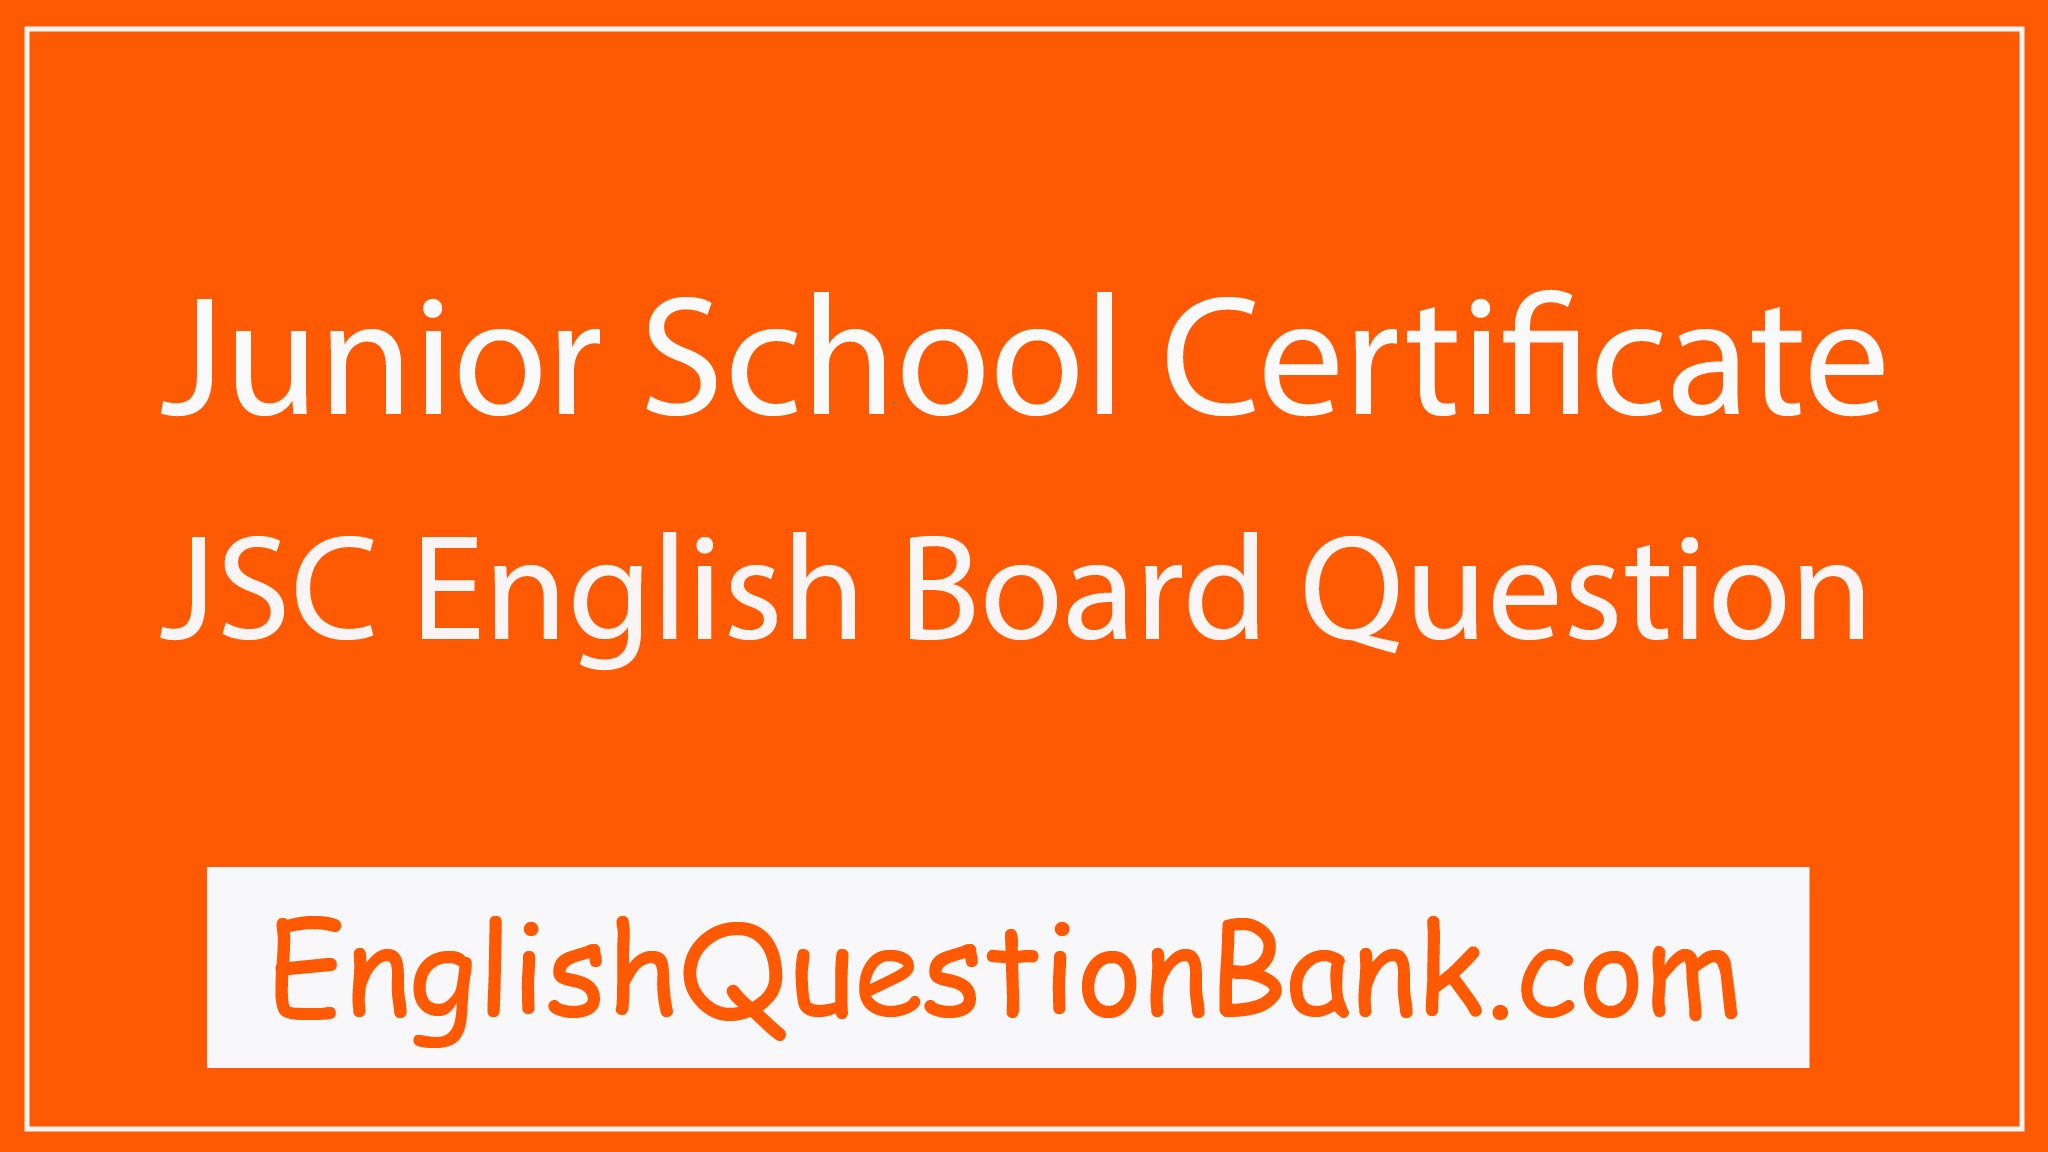 JSC English Board Questions